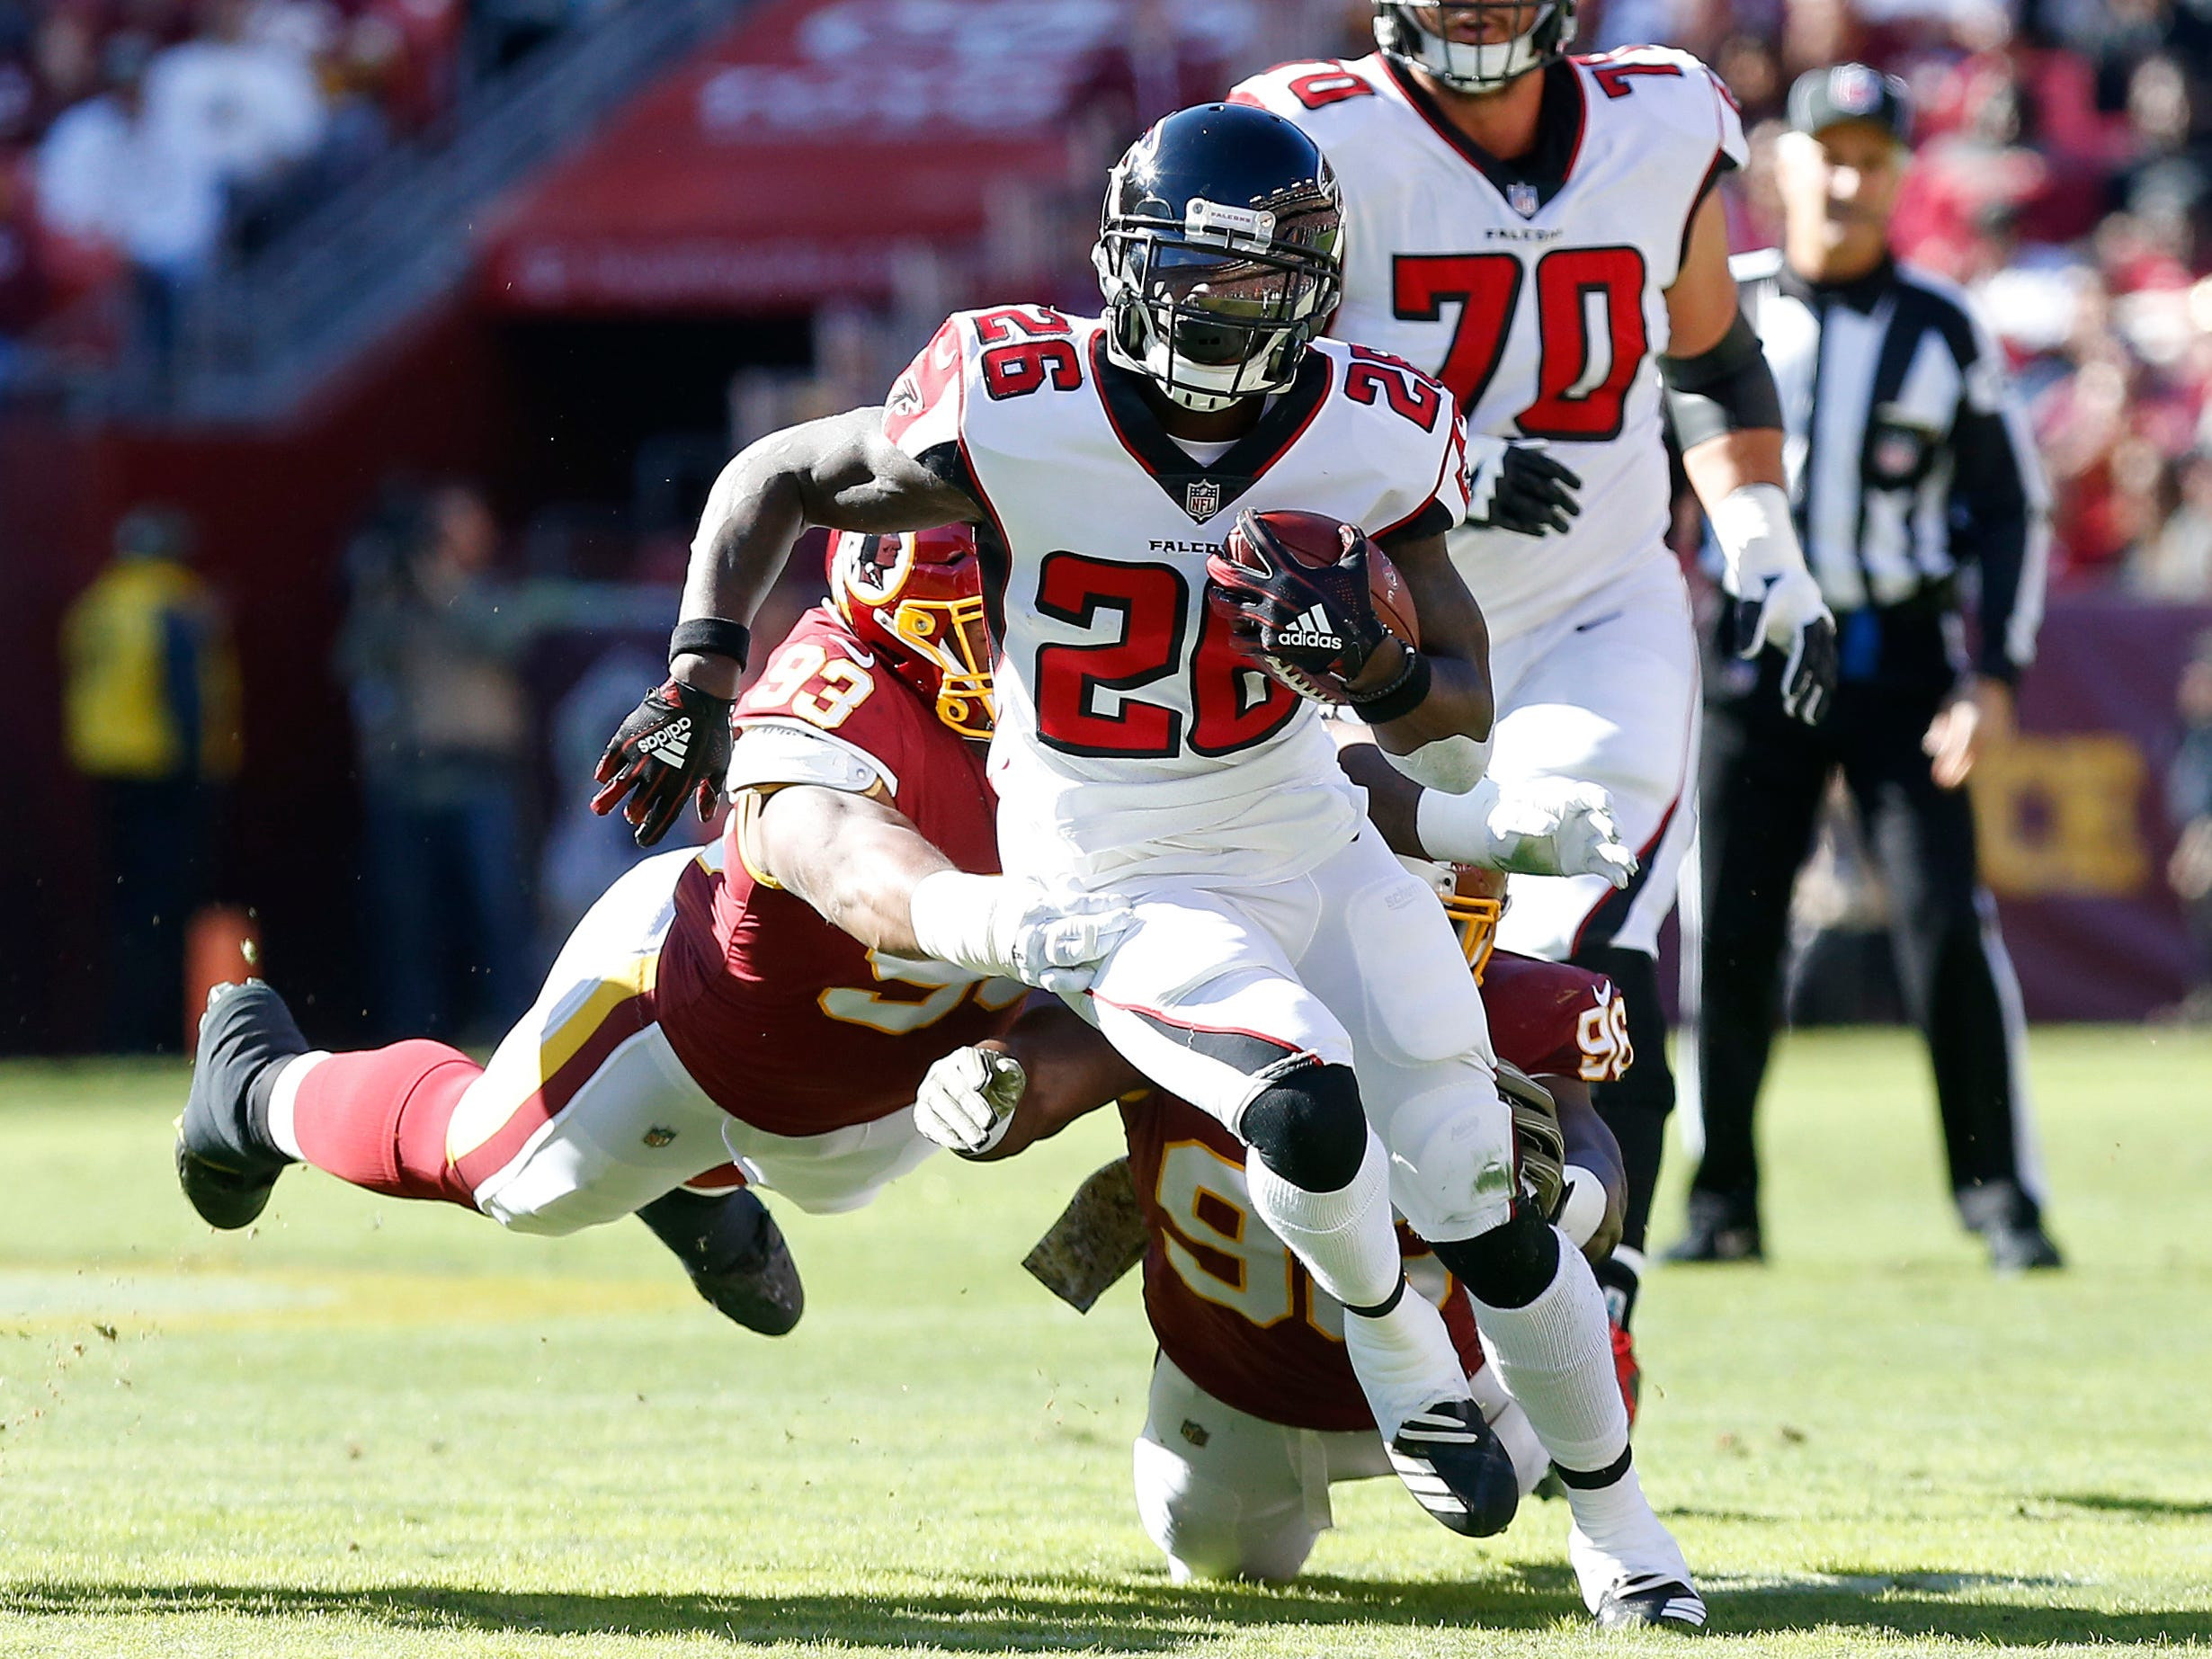 Atlanta Falcons running back Tevin Coleman (26) carries the ball past Washington Redskins defensive end Jonathan Allen (93) en route to a touchdown in the first quarter at FedExField.